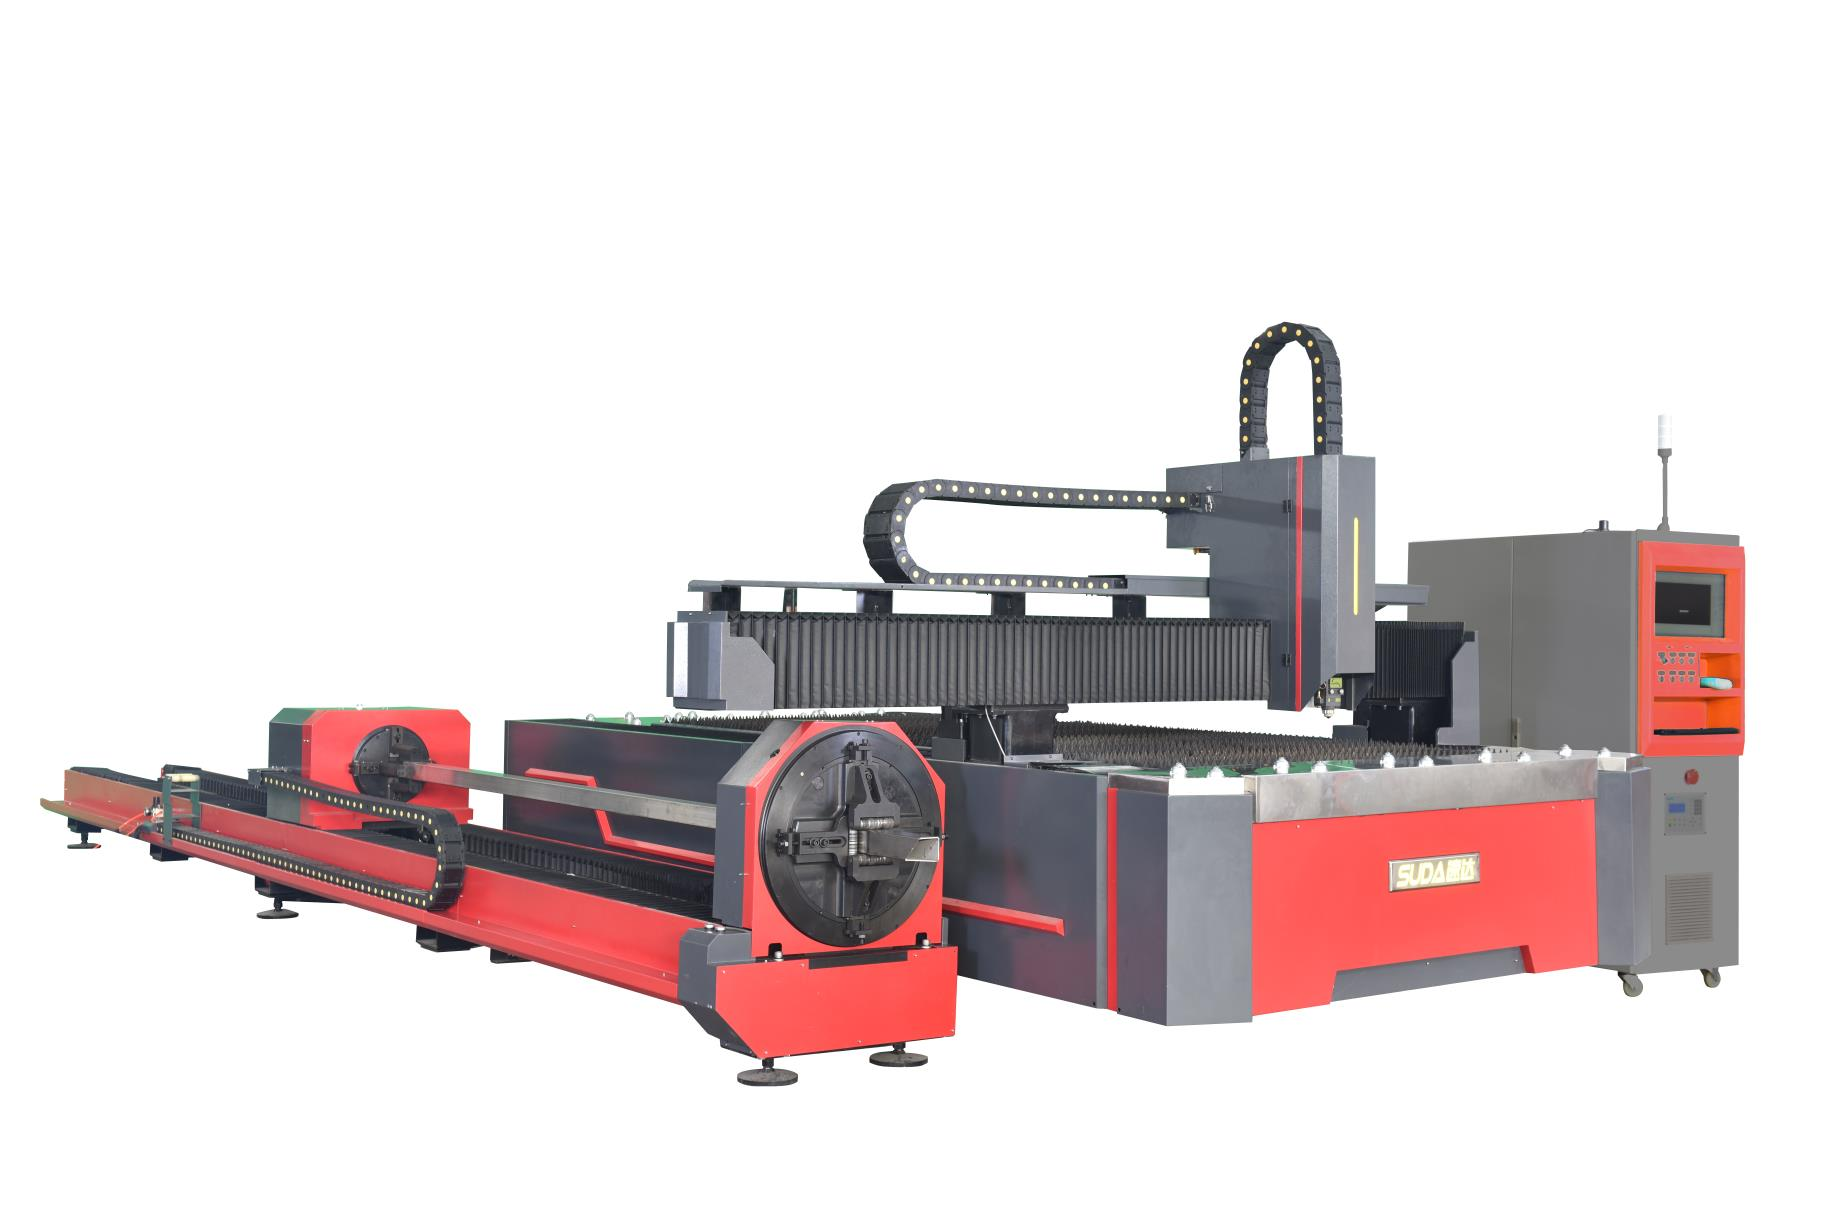 SUDA FG3015 fiber laser cutting machine with rotary device